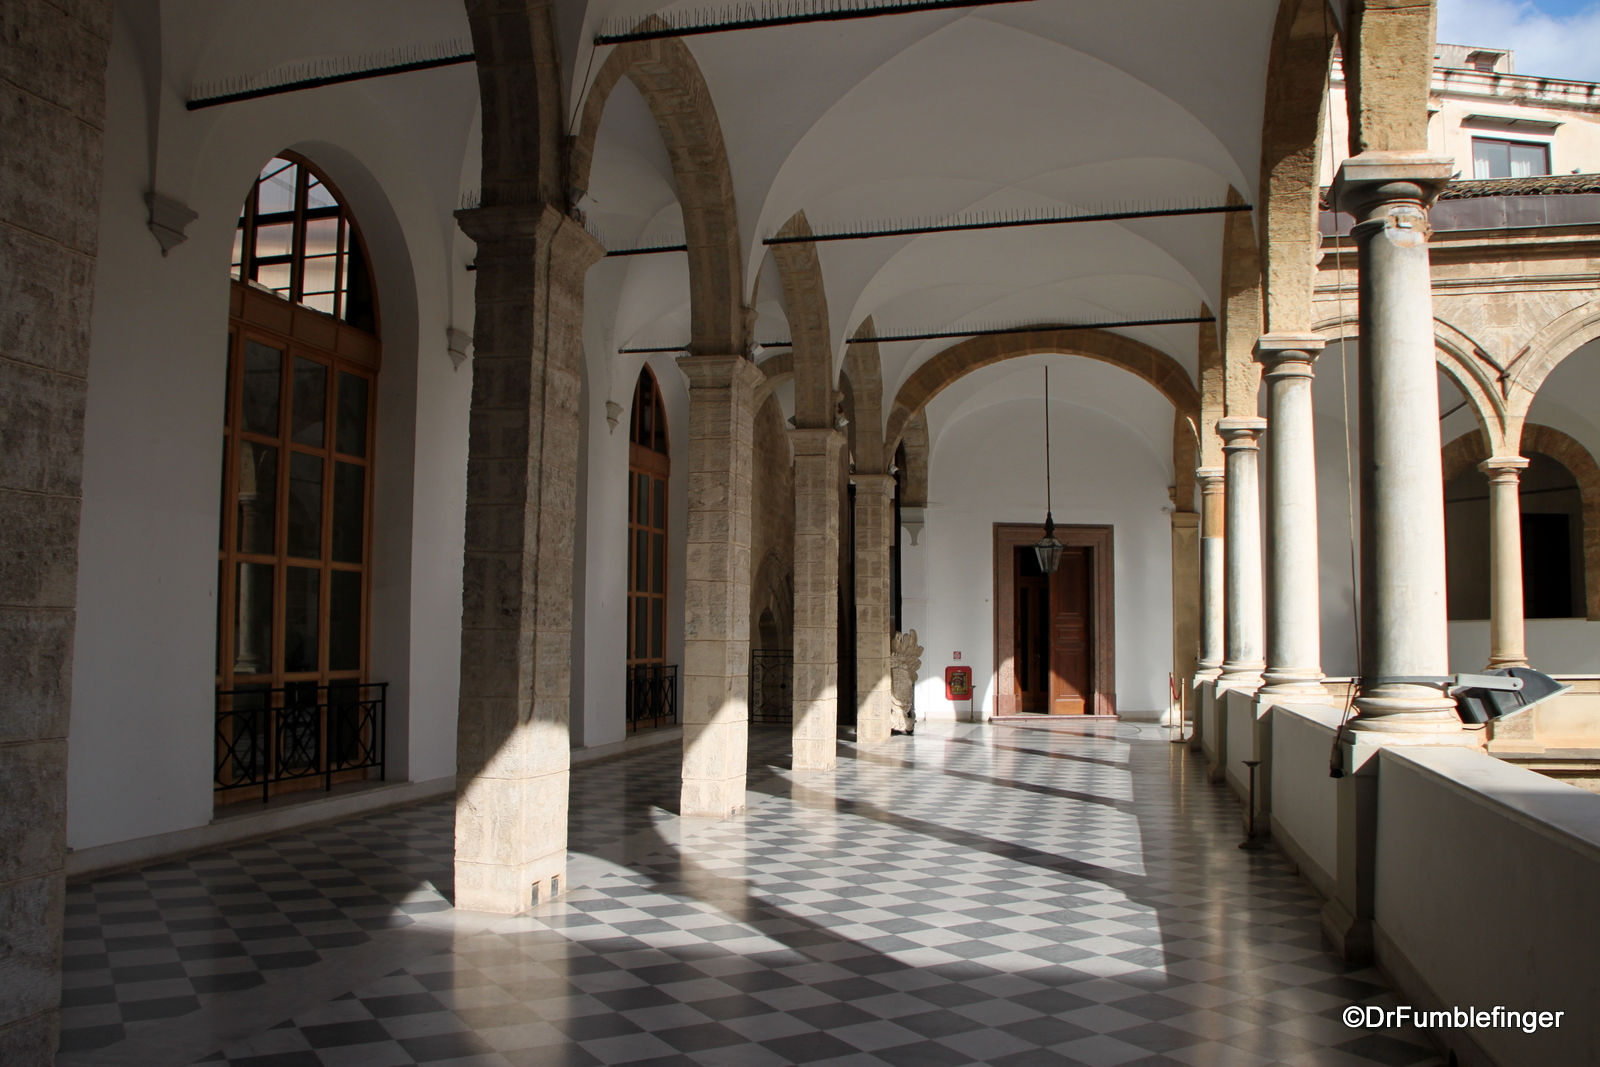 Interior of Parliament side of Palermo's Palazzo del Normanni